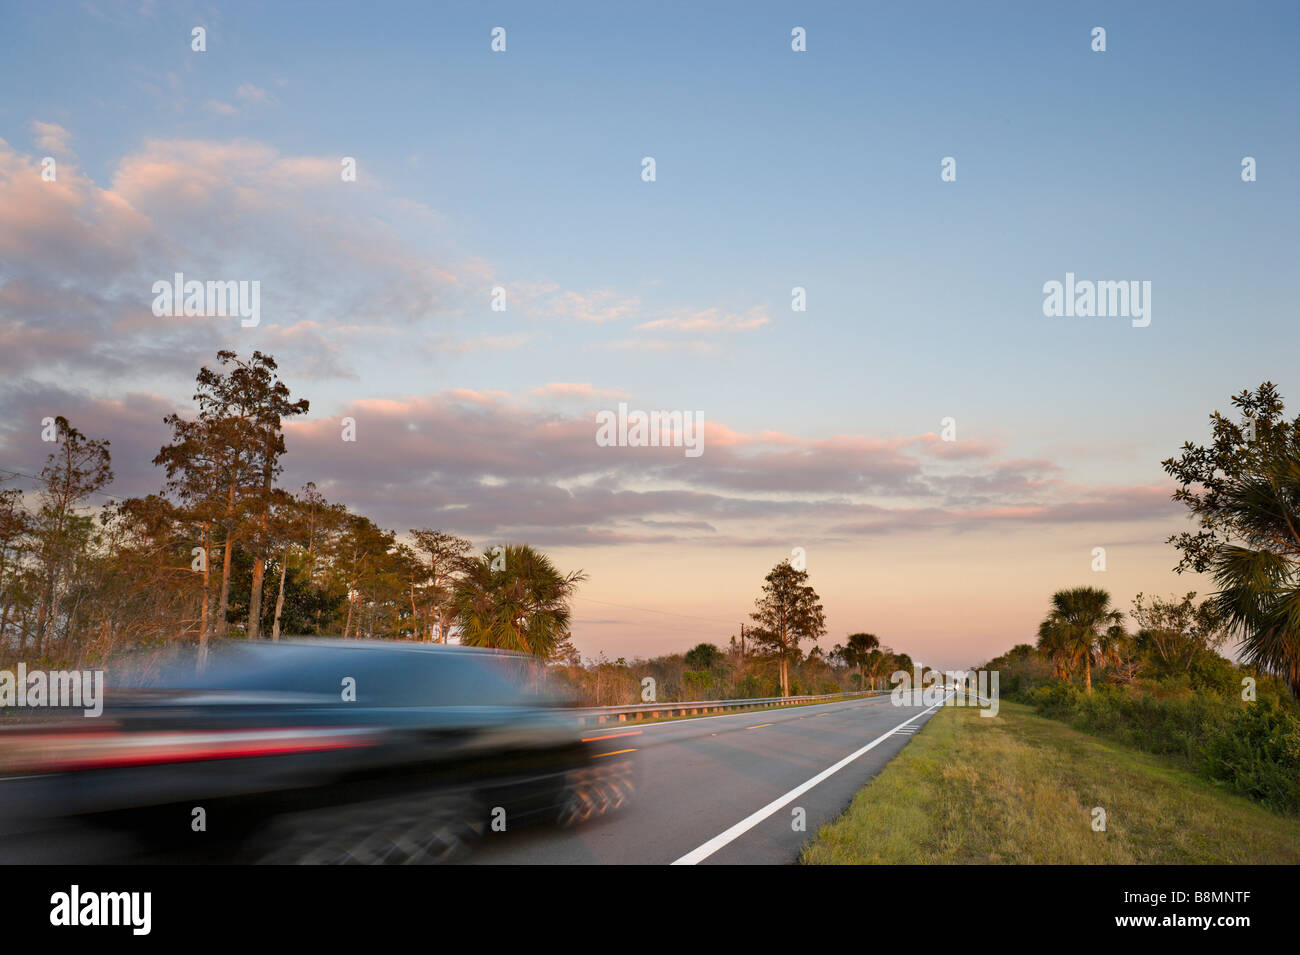 Everglades, Florida. Speeding car at sunset on Tamiami Trail (US 41) in Big Cypress National Preserve, Florida Everglades, - Stock Image